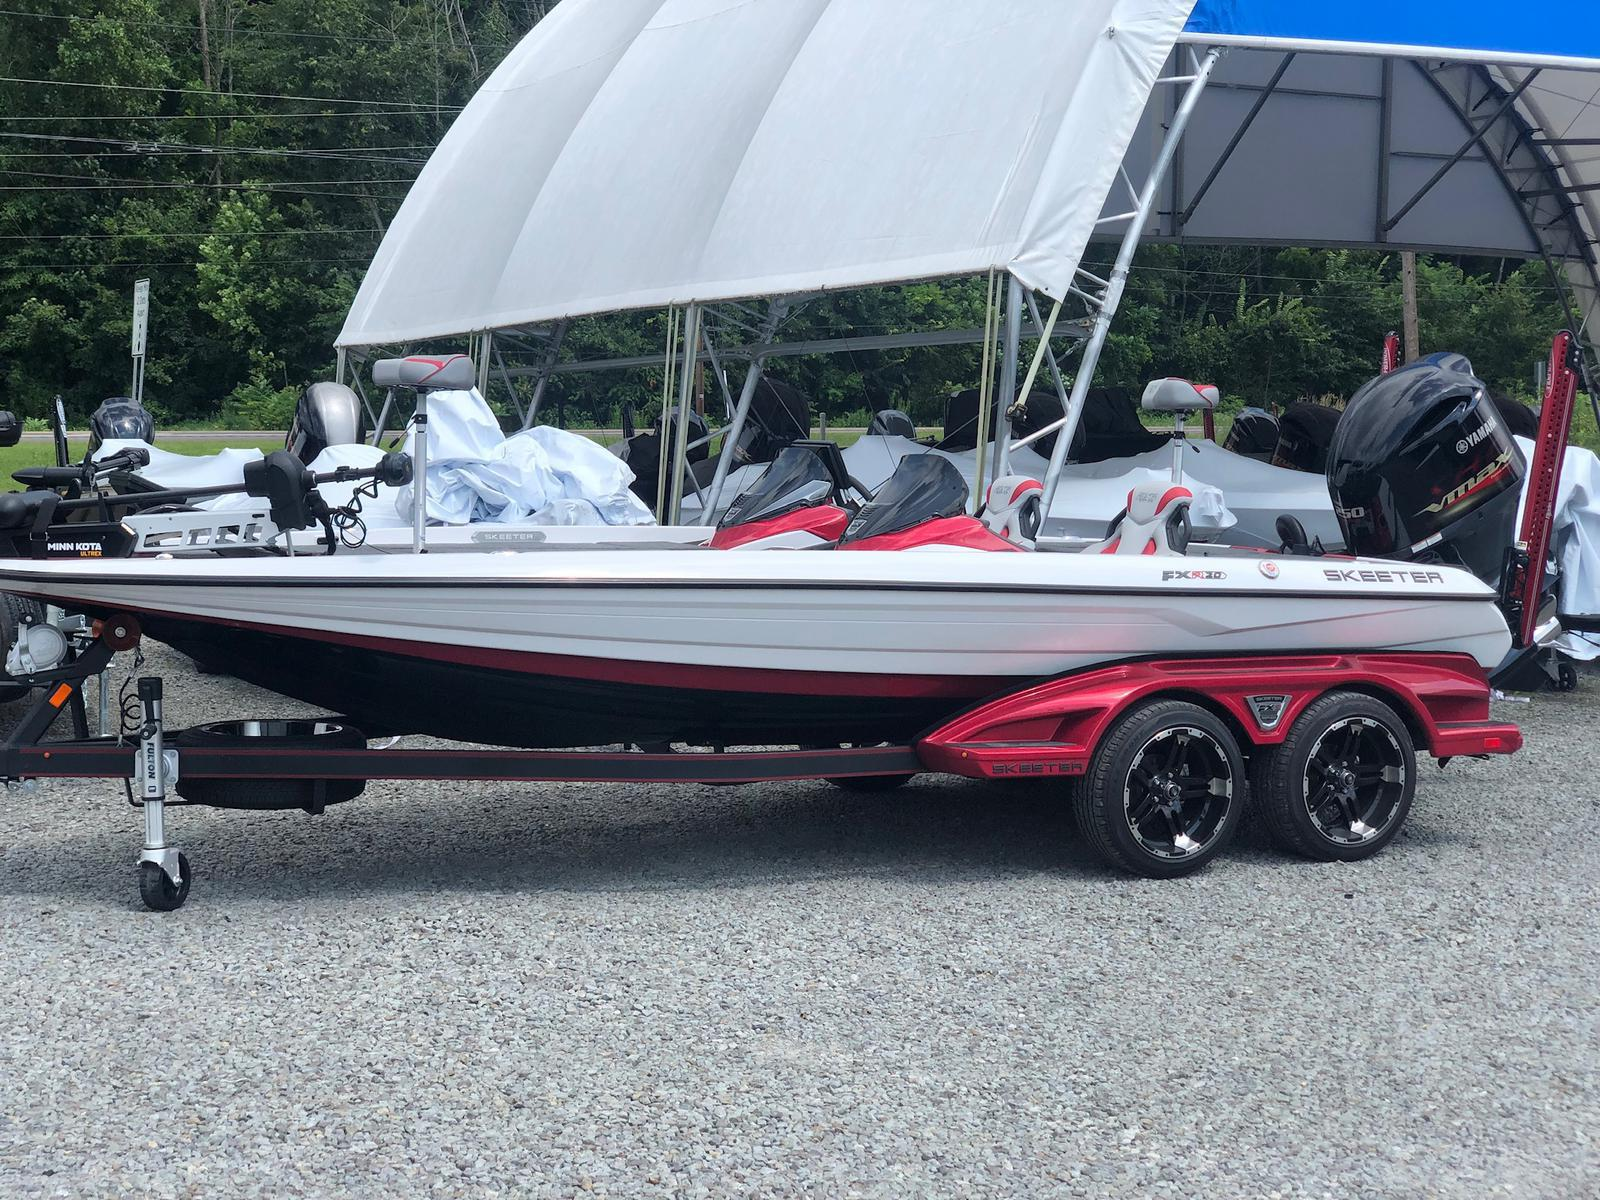 Boats for sale in Pennsylvania - Boat Trader